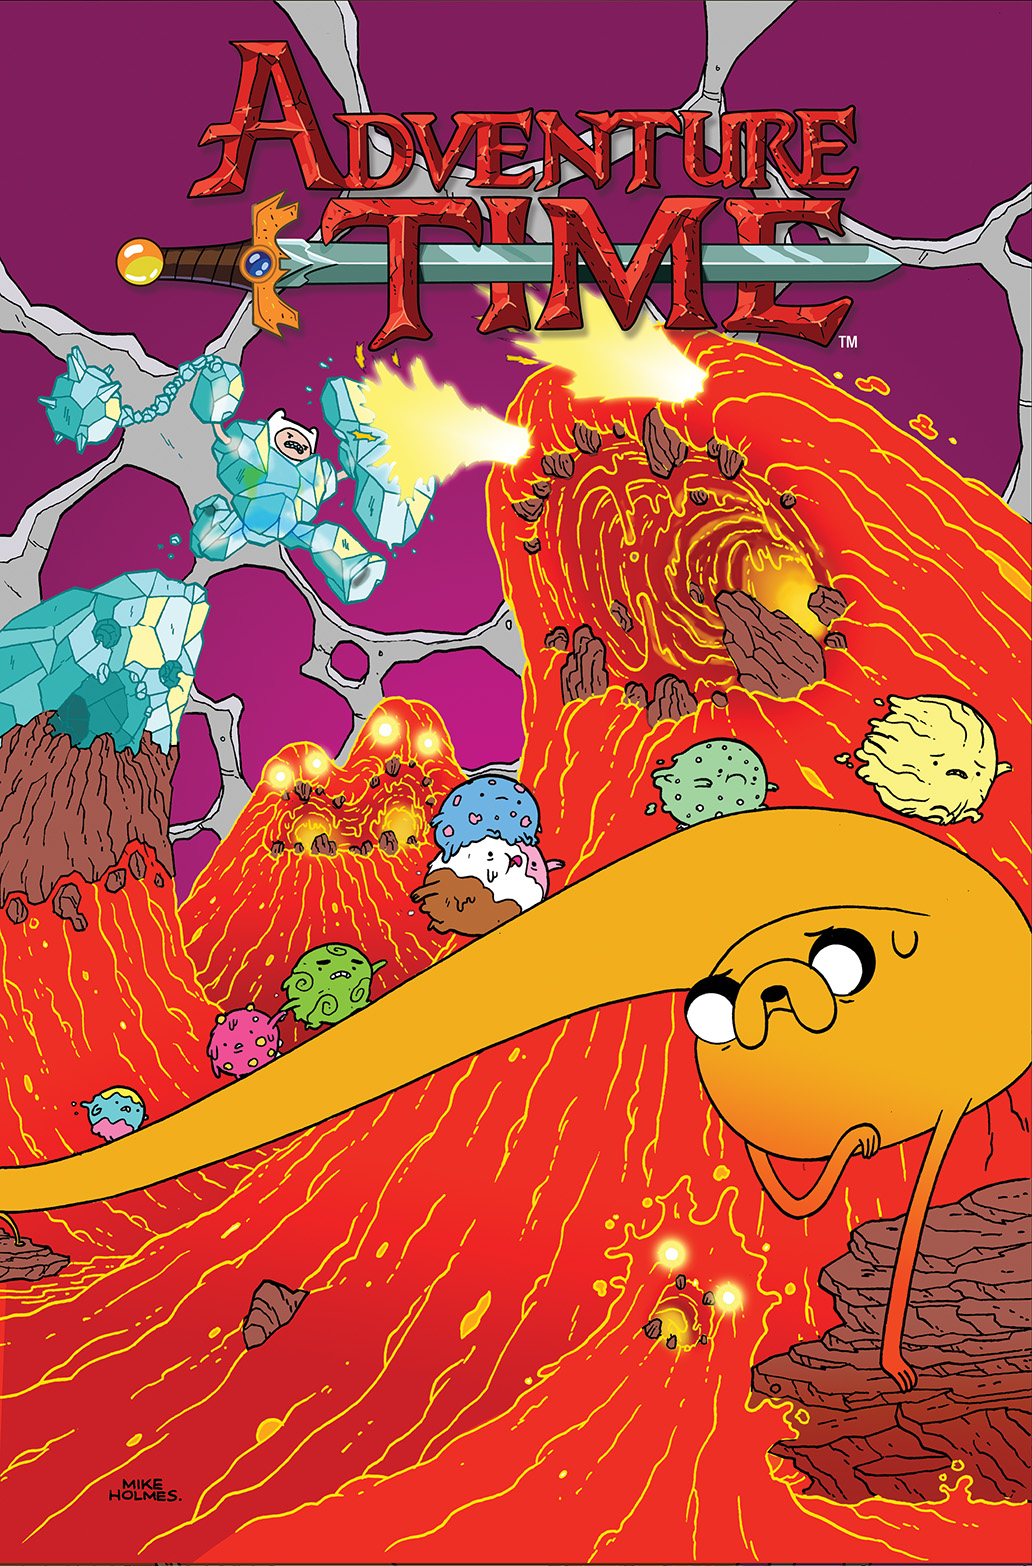 ADVENTURE TIME #29 Cover A by Mike Holmes